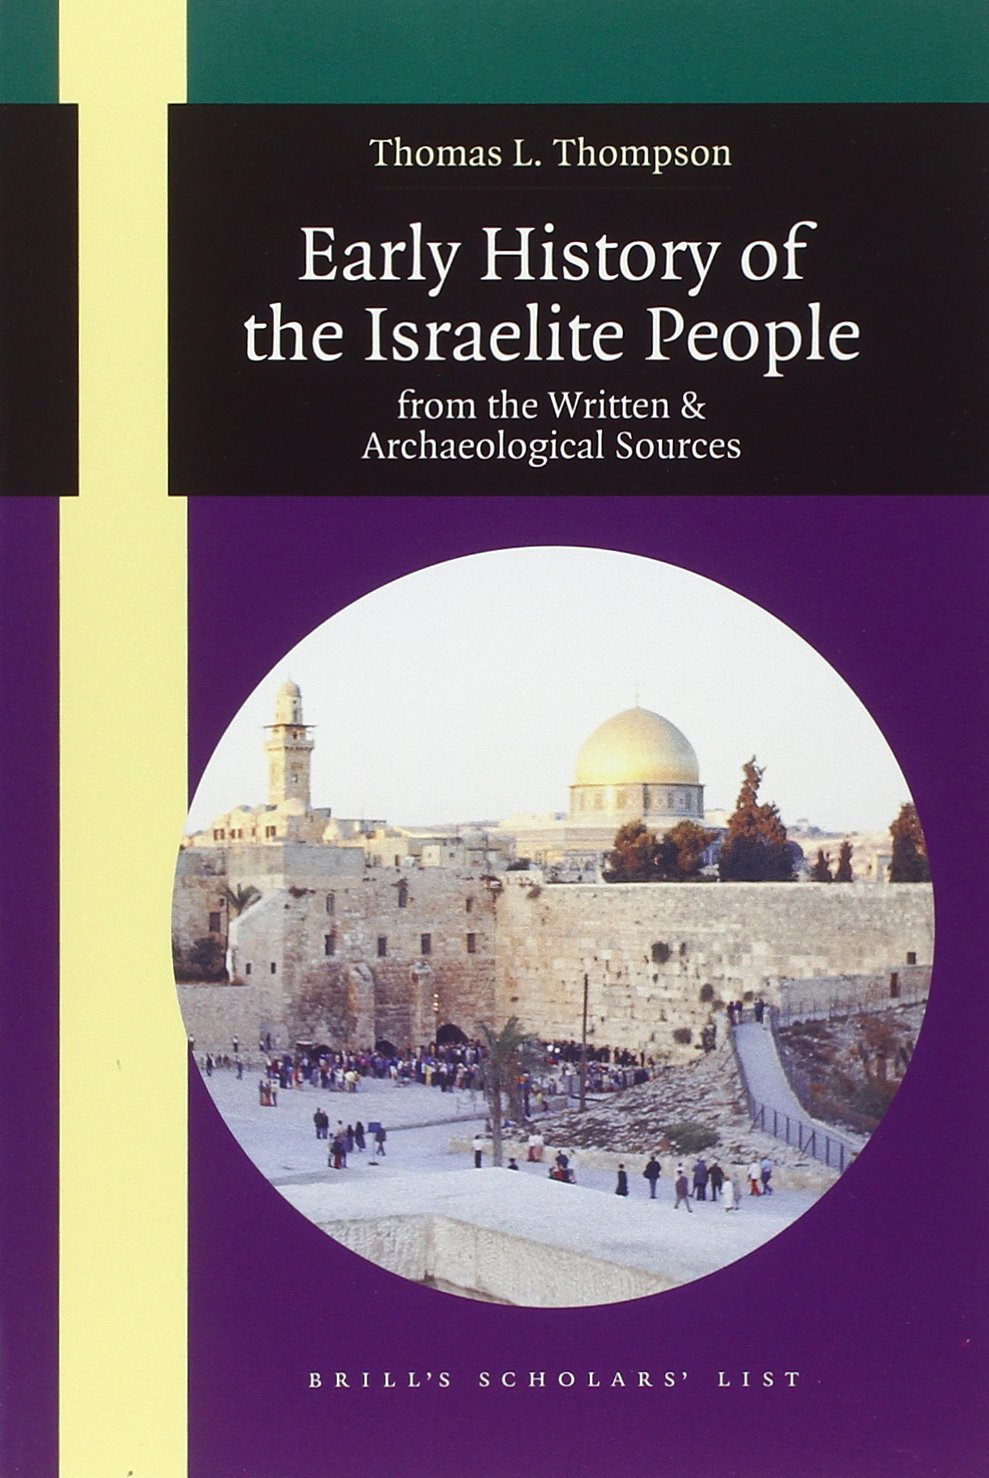 Early History of the Israelite People: From the Written & Archaeological Sources (Brill's Scholars' List) pdf epub